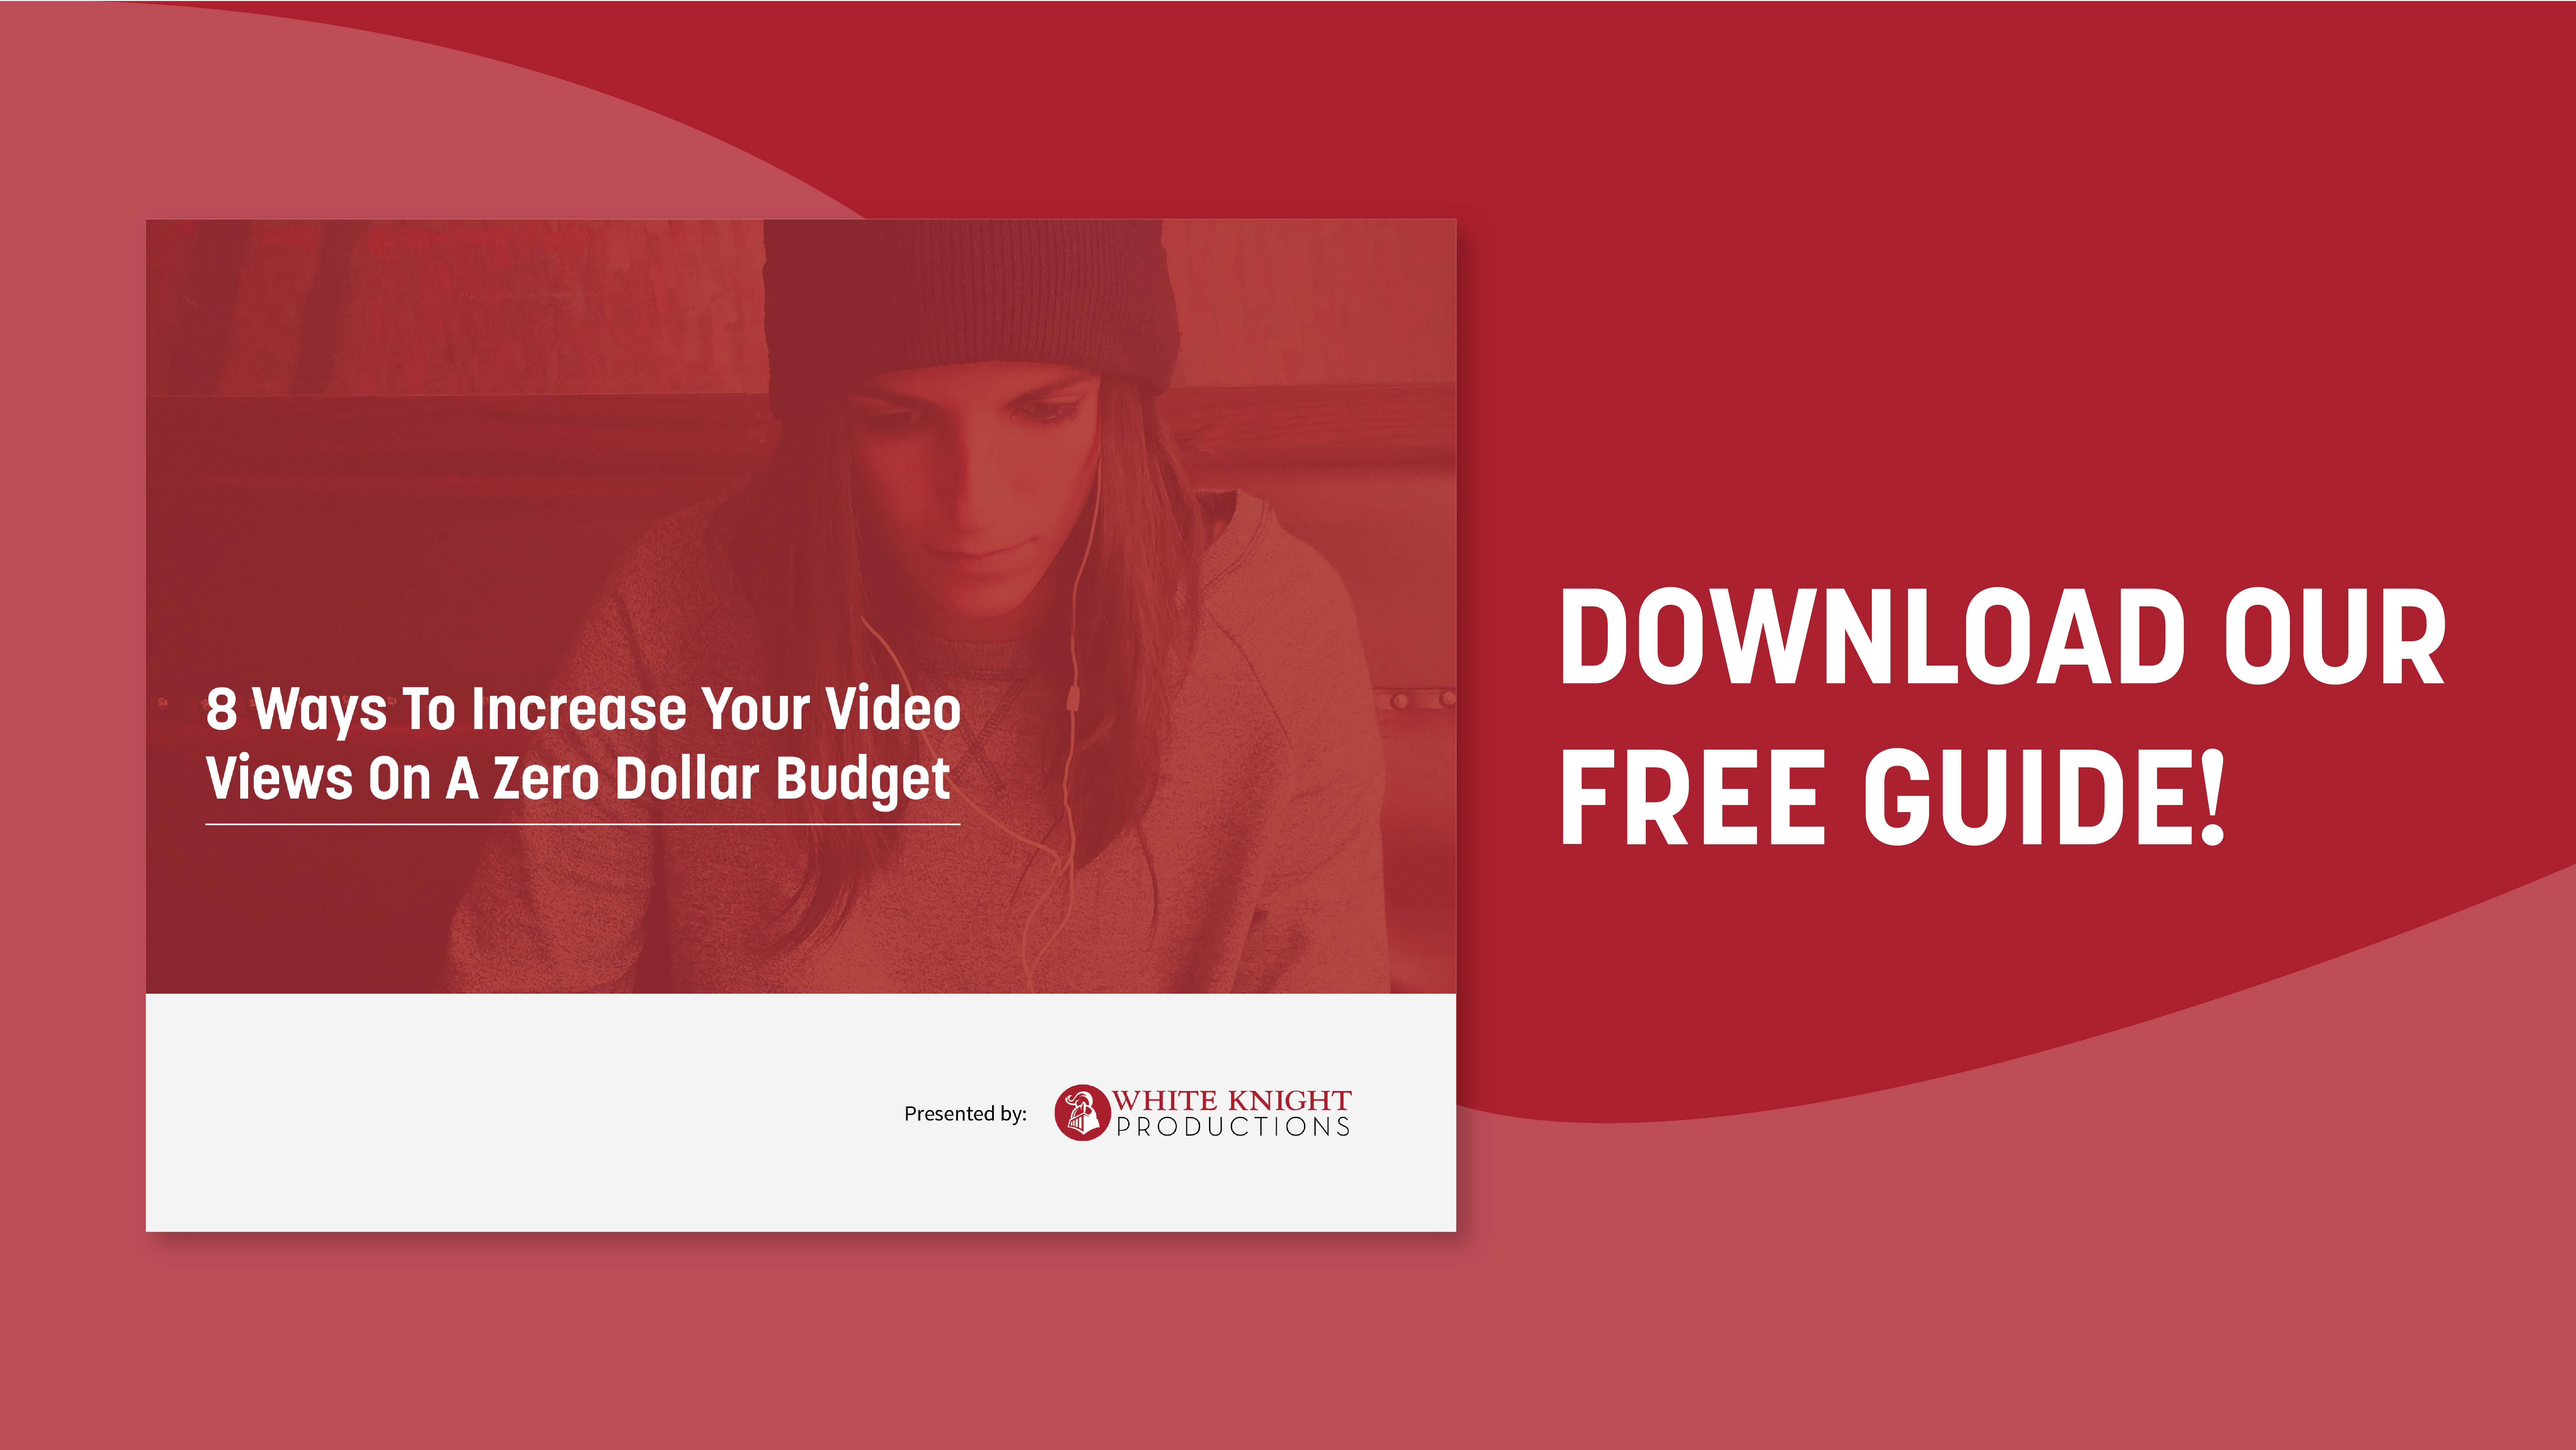 Download our free guide